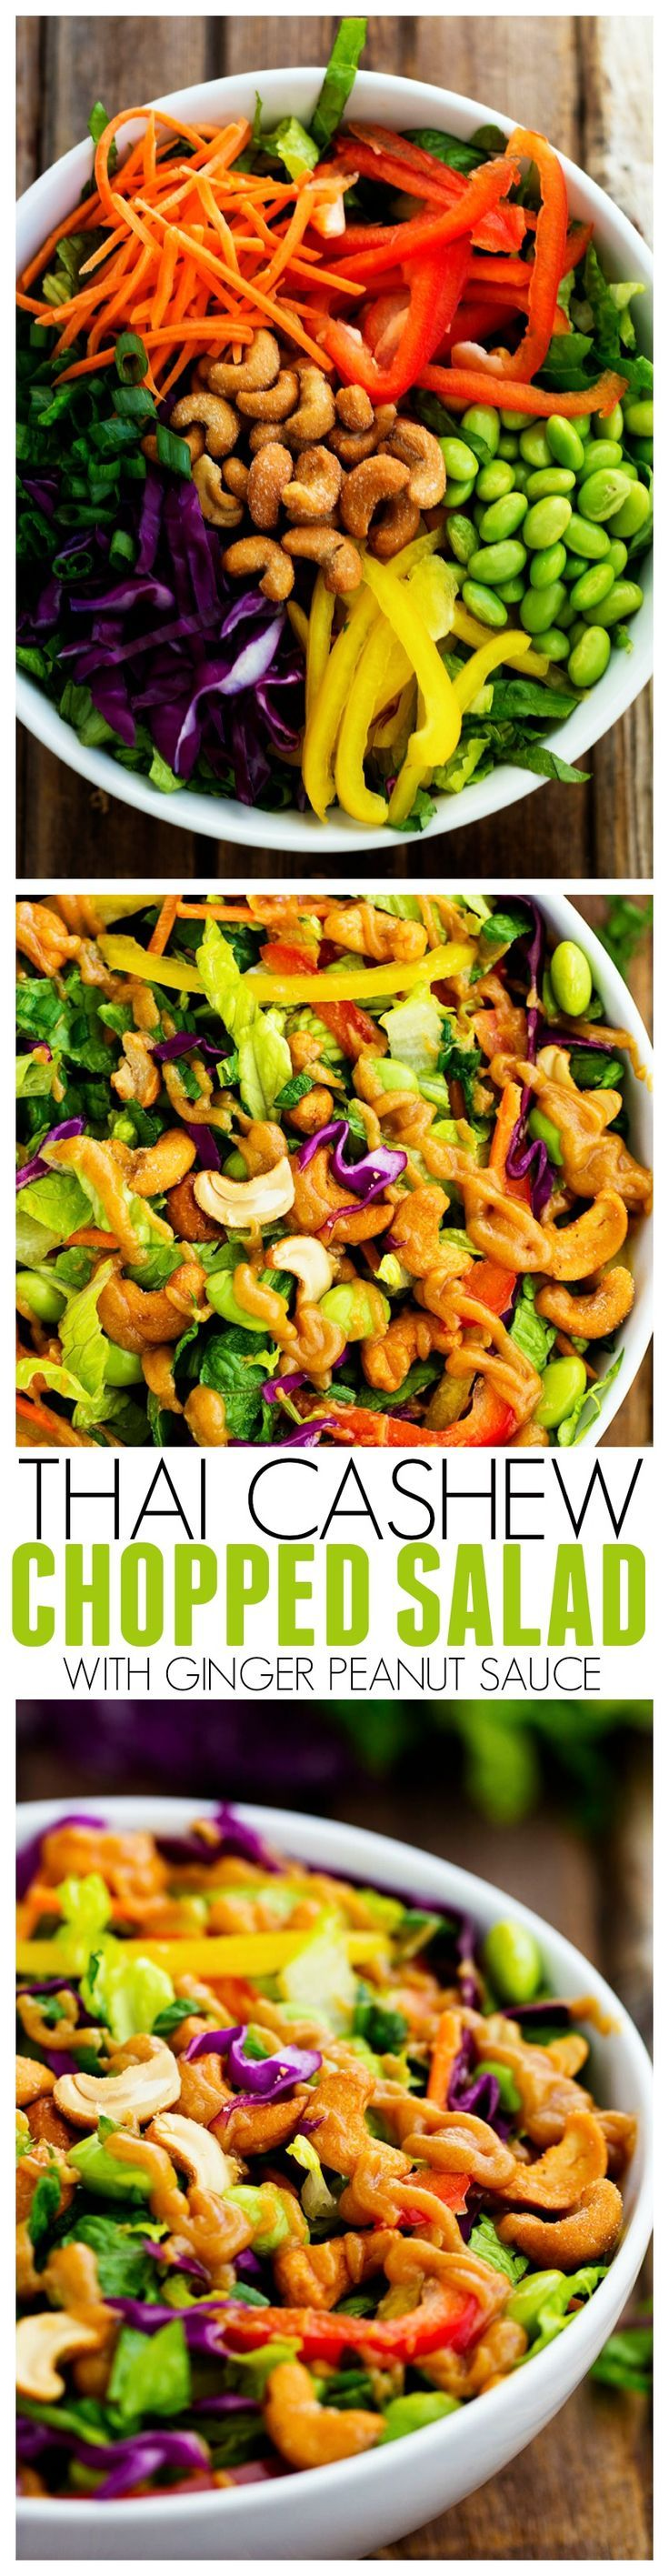 This Thai Cashew Chopped Salad Recipe | Asian food | The cashews give it an amazing crunch and the ginger peanut sauce is incredible!